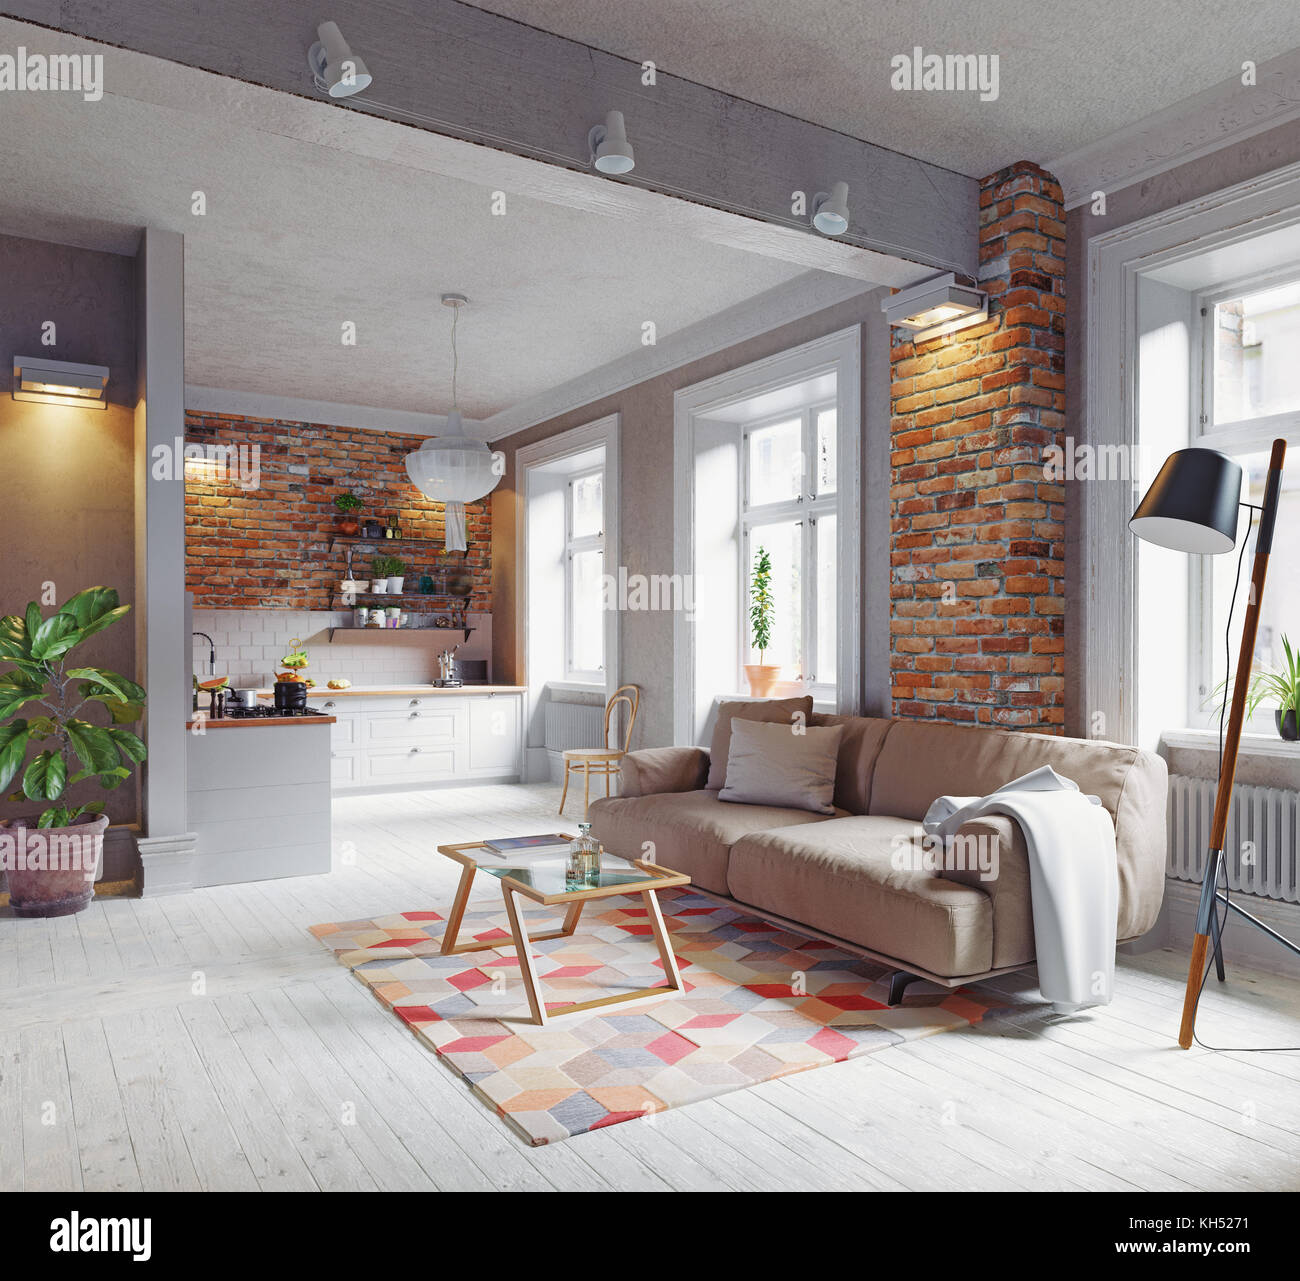 Skandinavisches Design Modernes Apartment Interieur Skandinavisches Design 3d Rendering